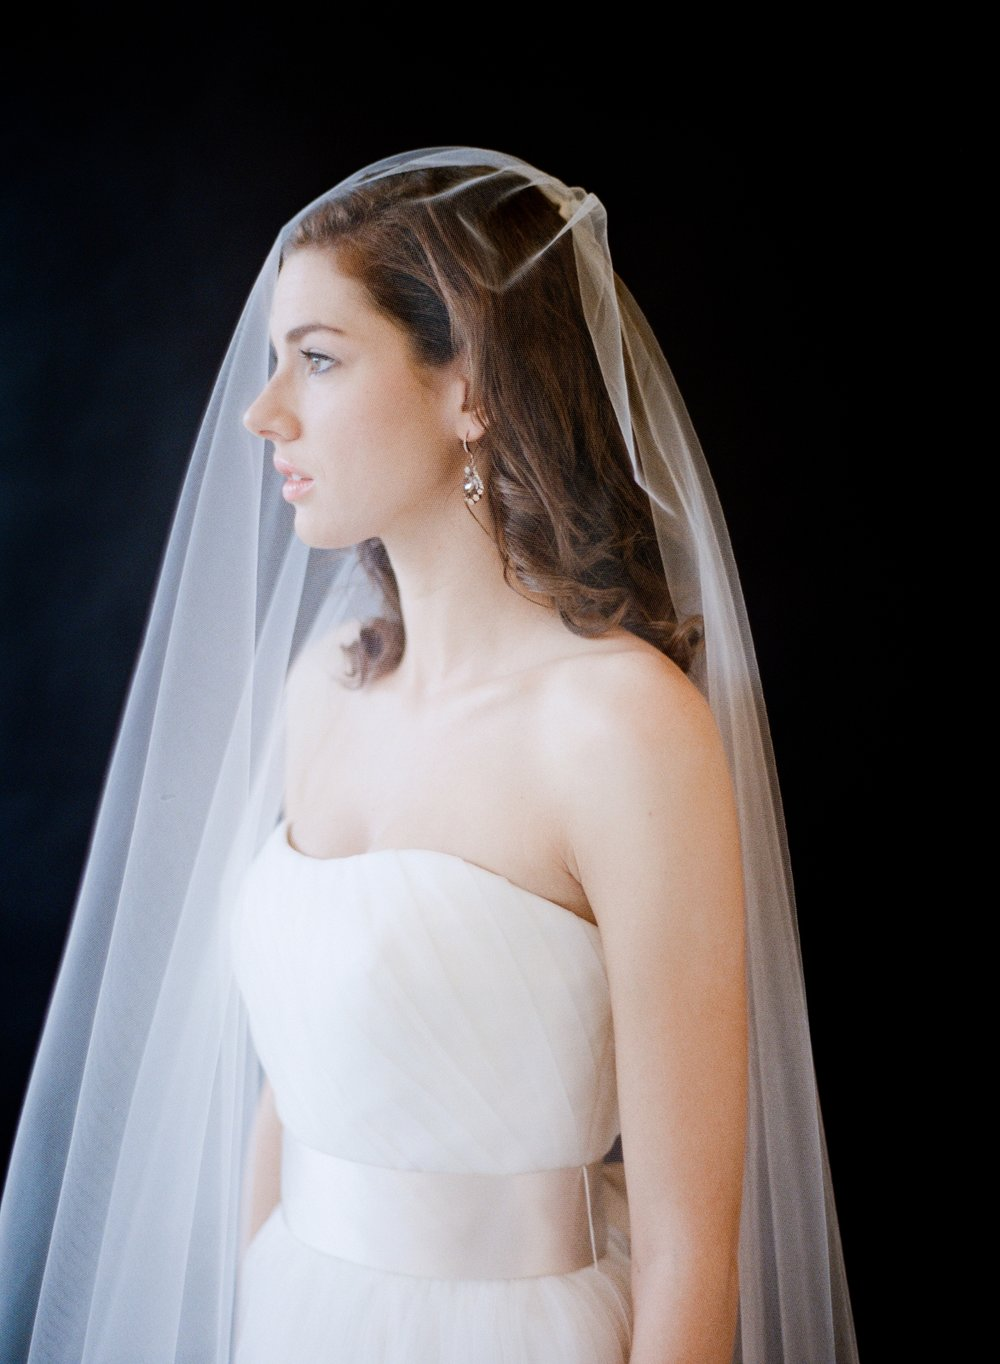 Classic Wedding Veil | West Palm Beach Wedding Photographer | Shannon Griffin 2.jpg